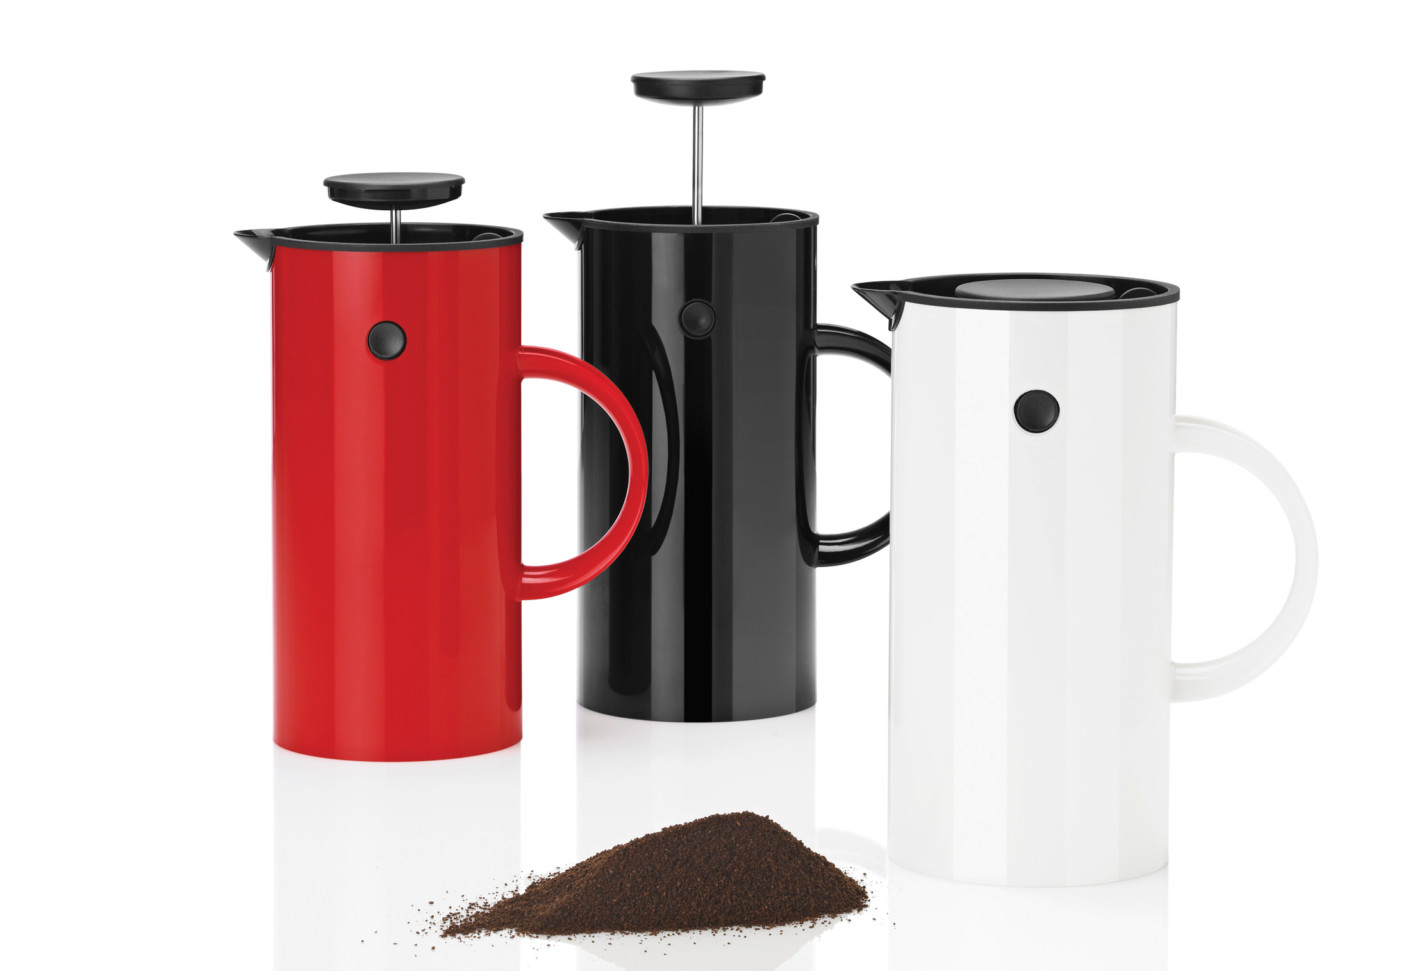 Coffee maker by Stelton STYLEPARK